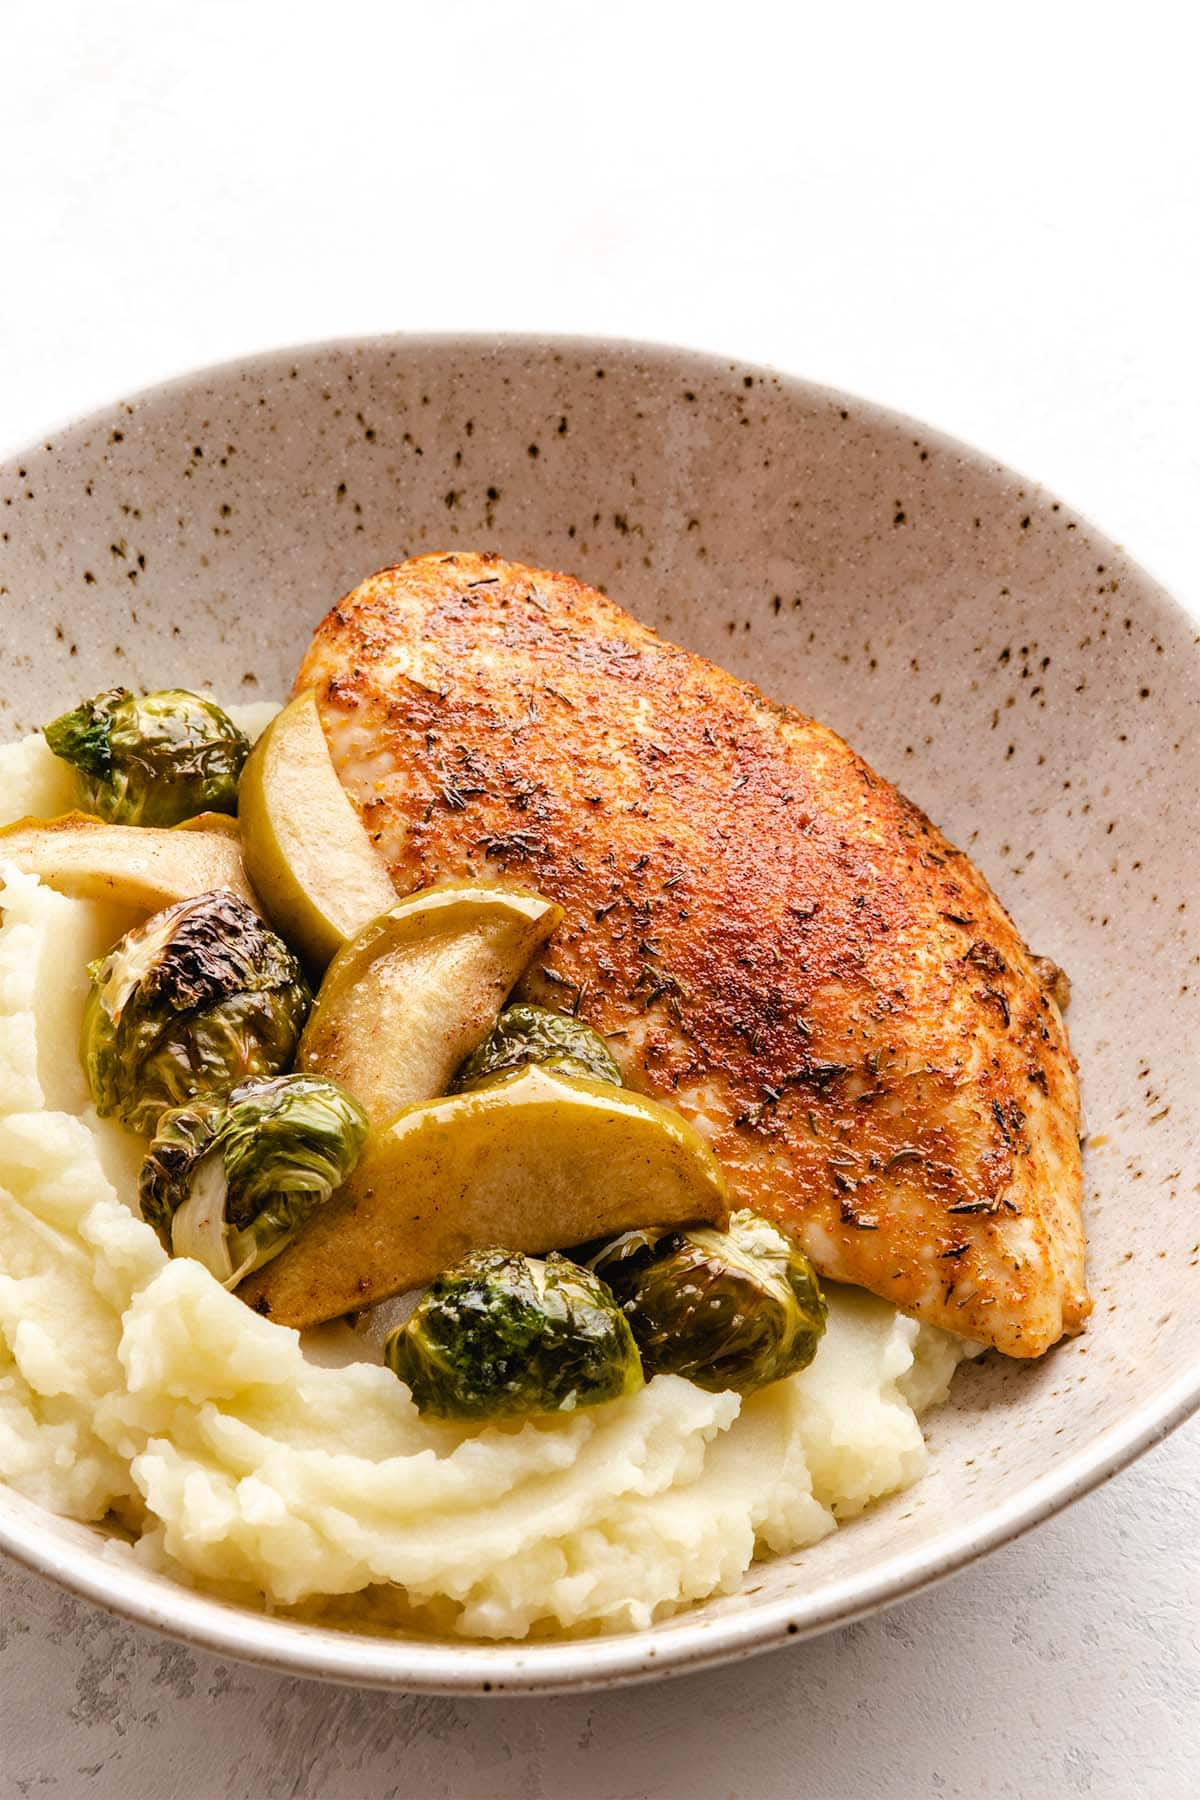 Roasted chicken breast with brown sugar seasoning, served with sliced apples, Brussels sprouts and mashed potatoes in a beige speckled low bowl.